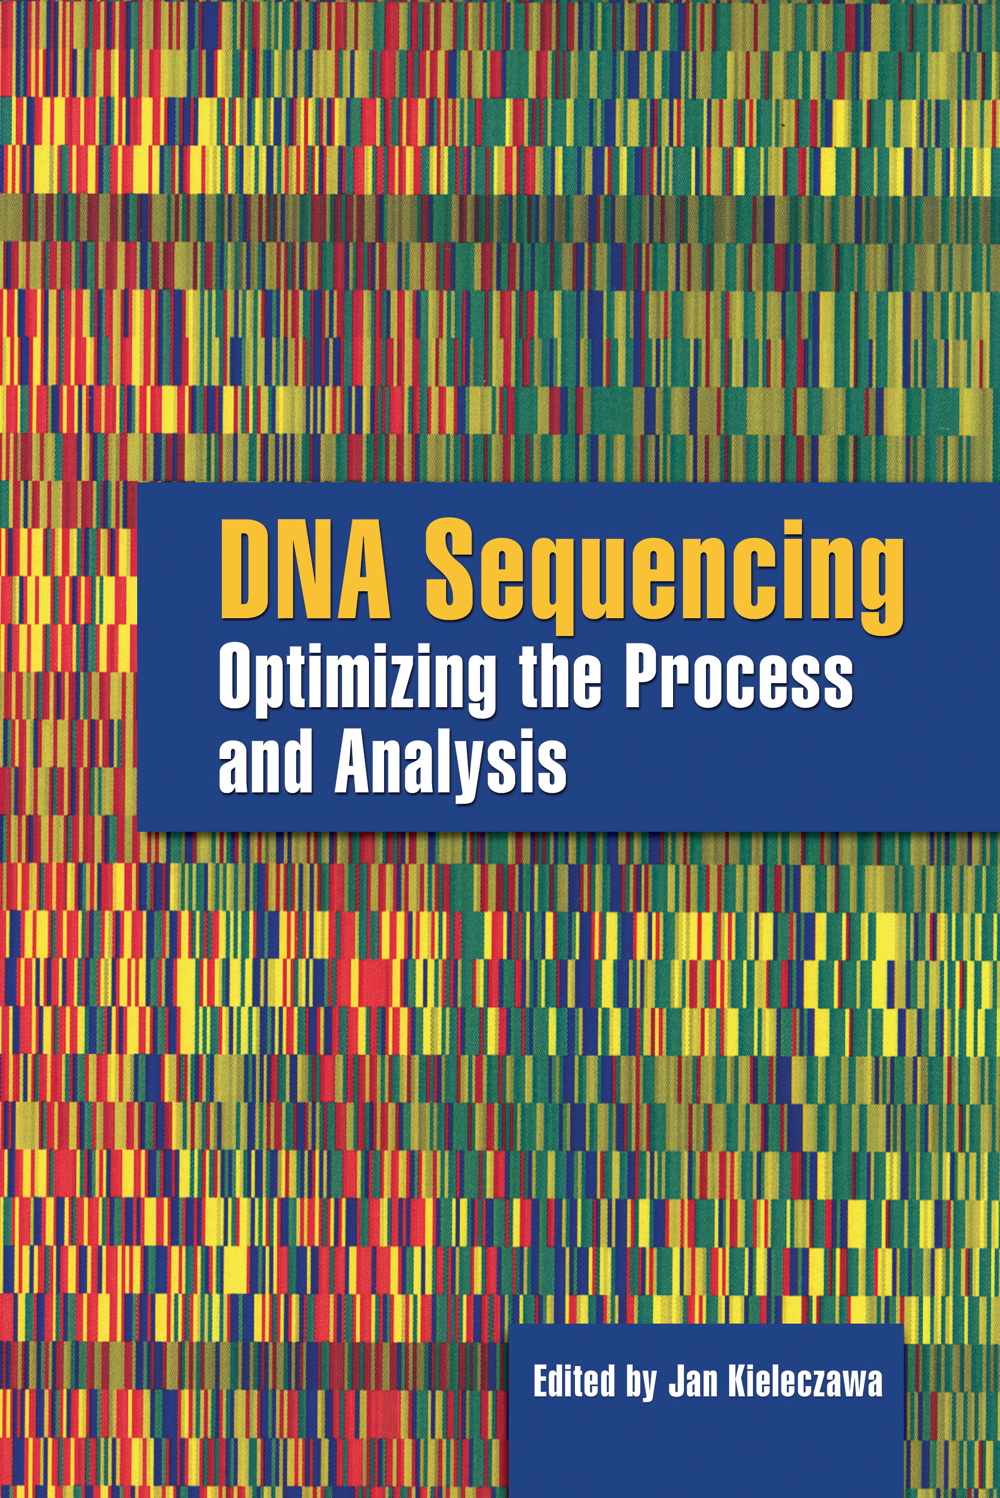 DNA Sequencing:  Optimizing the Process and Analysis - 9780763747824